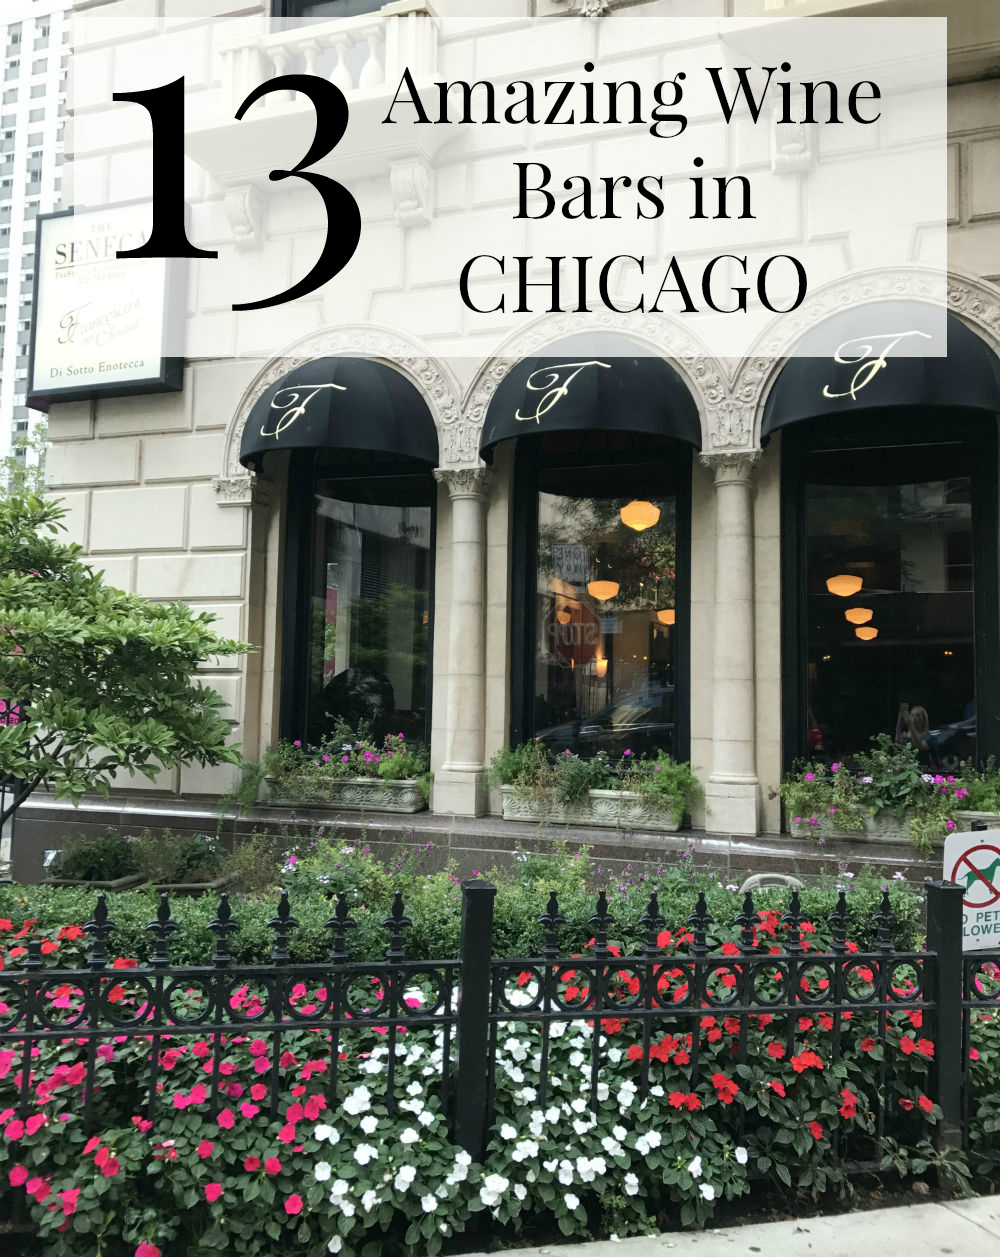 13amazingwinebarsinchicago